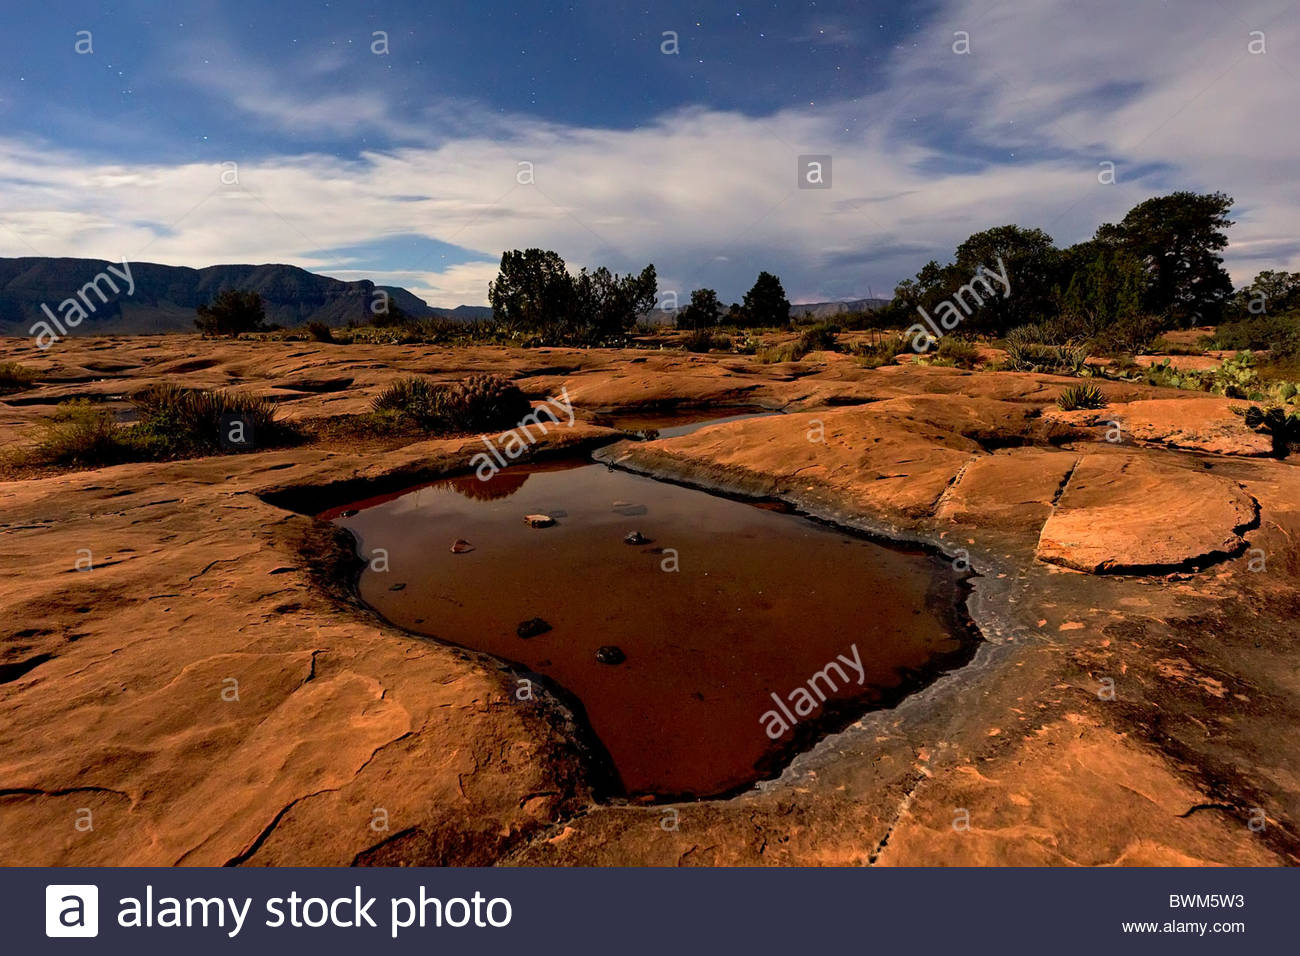 Rain water collects in several potholes in the hard, sandstone desert landscape at Tuweep, Arizona. - Stock Image